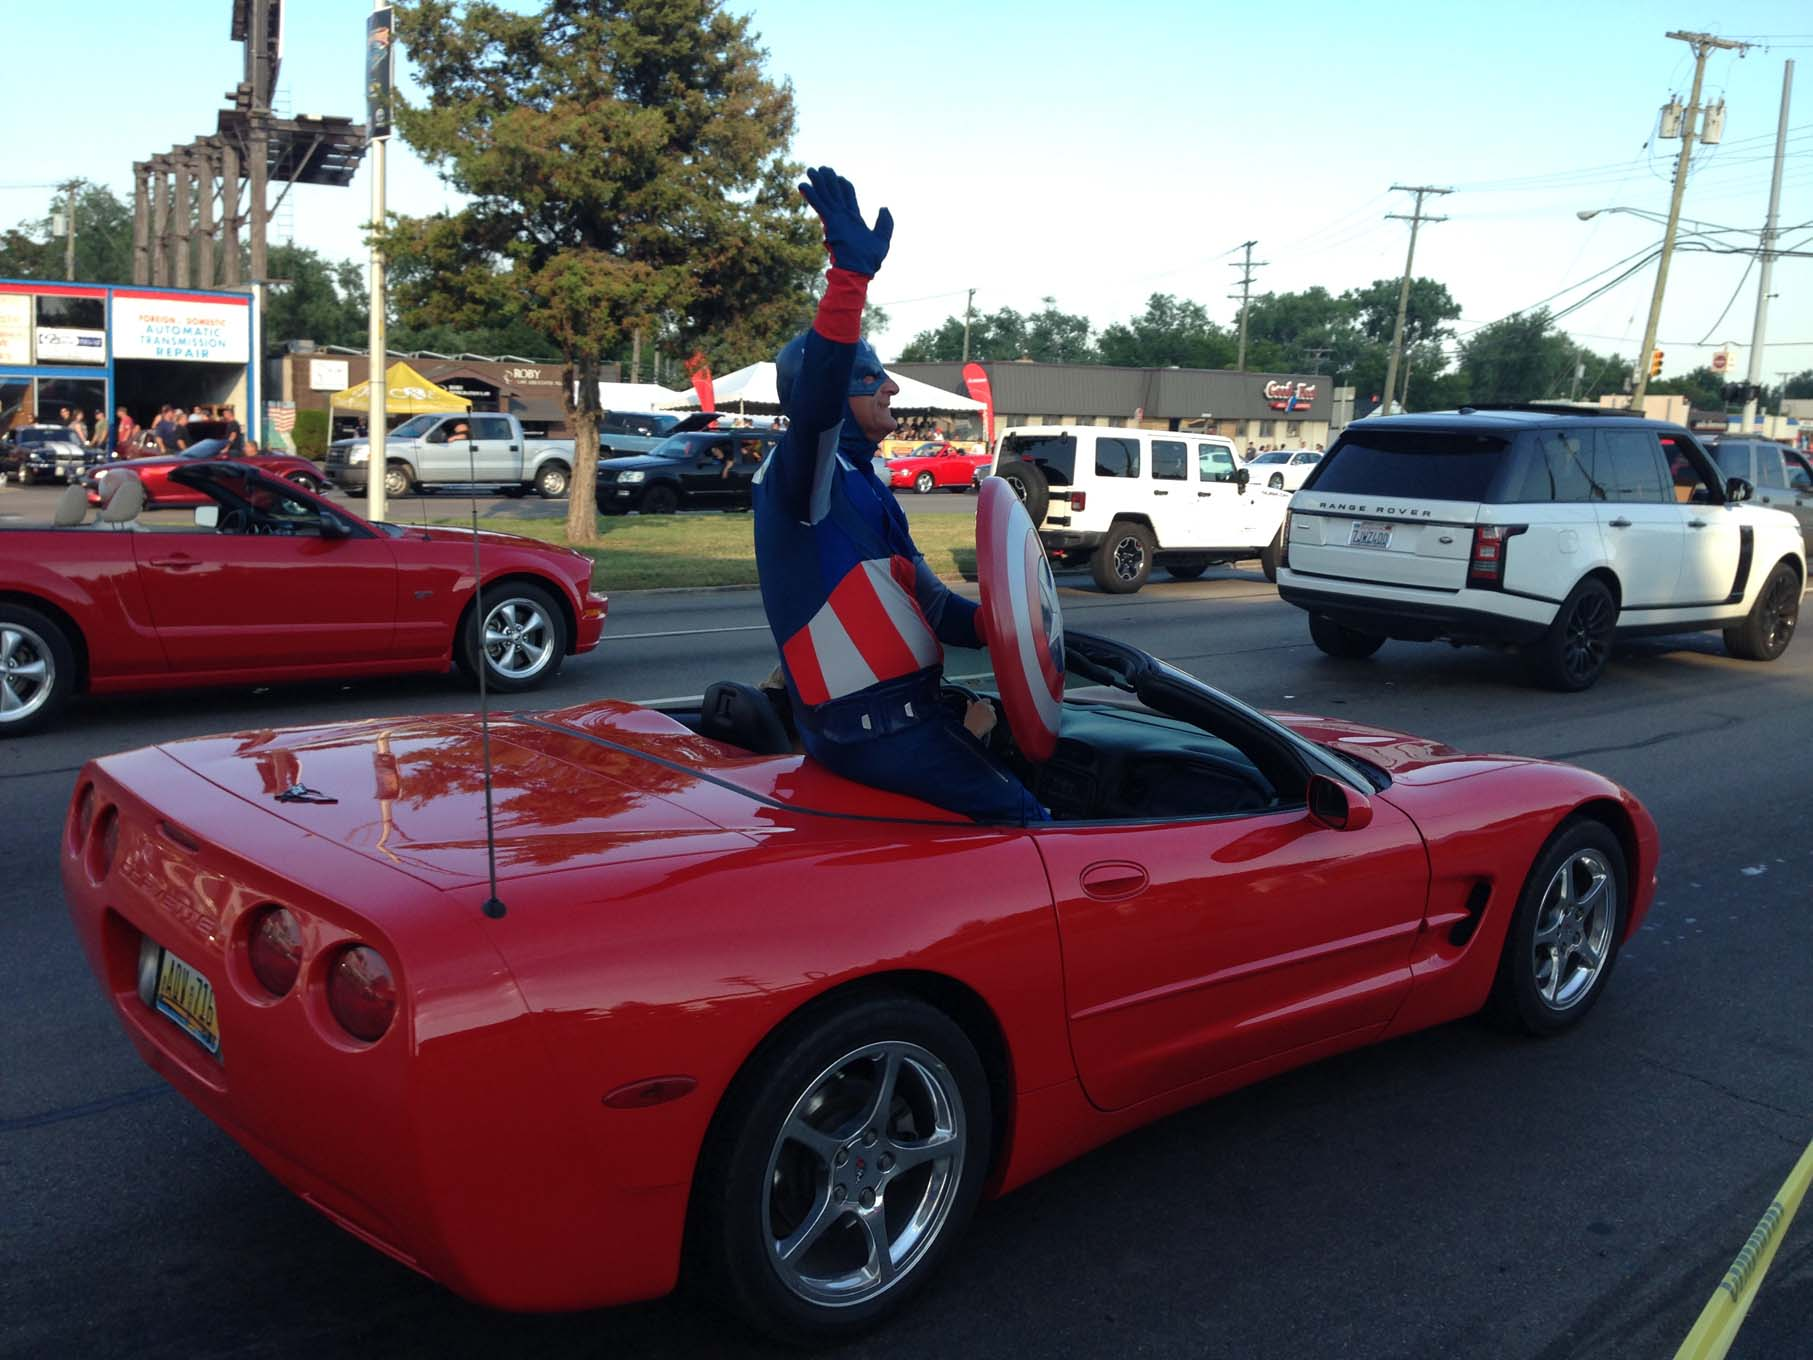 Only at the Dream Cruise would you find a grown man dressed up as Captain America riding in a Corvette convertible. People having fun with cars is what the event is all about … much to the delight of both participants and the huge number of spectators.